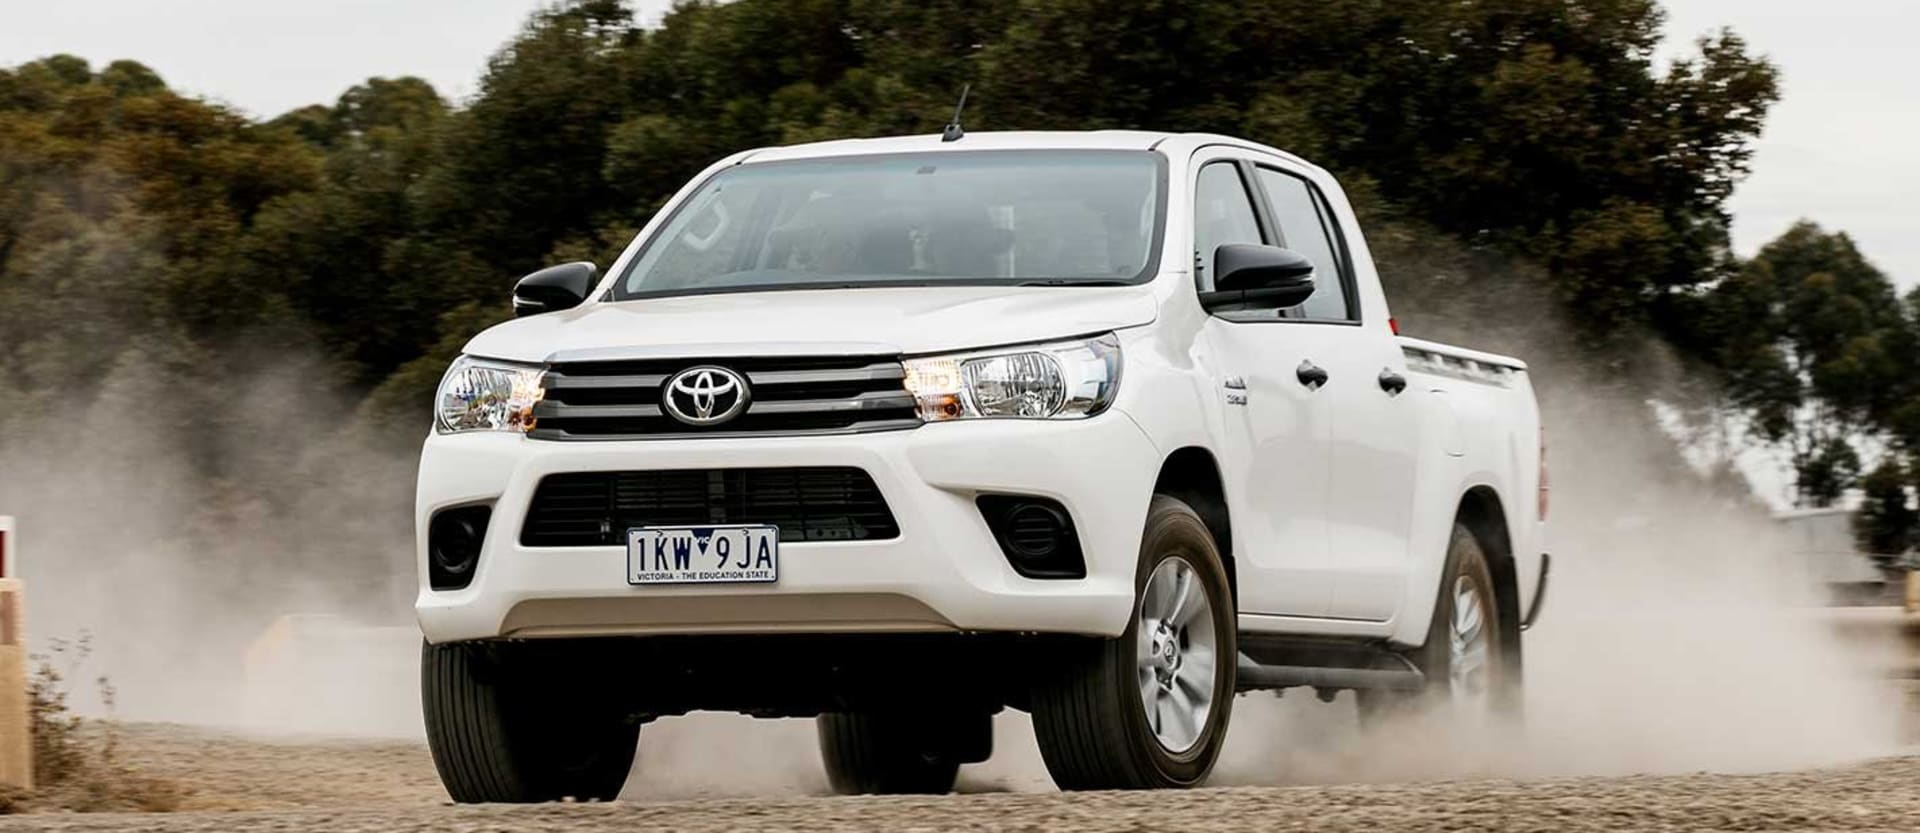 Toyota Hilux is 2018 best-selling vehicle